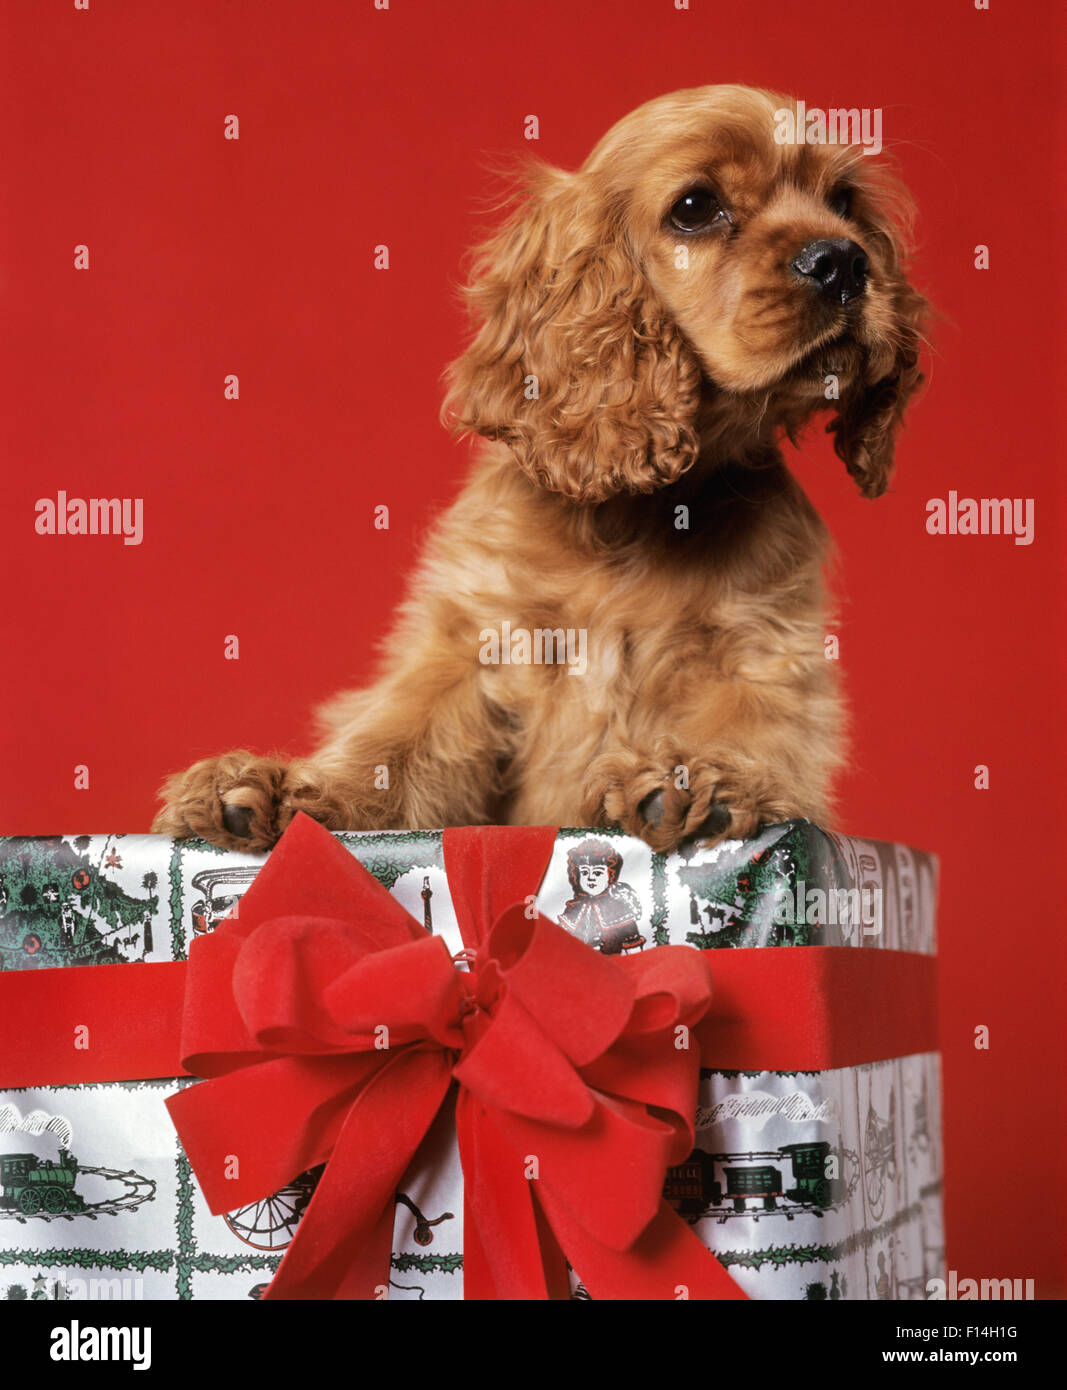 Red Ribbon On Dog